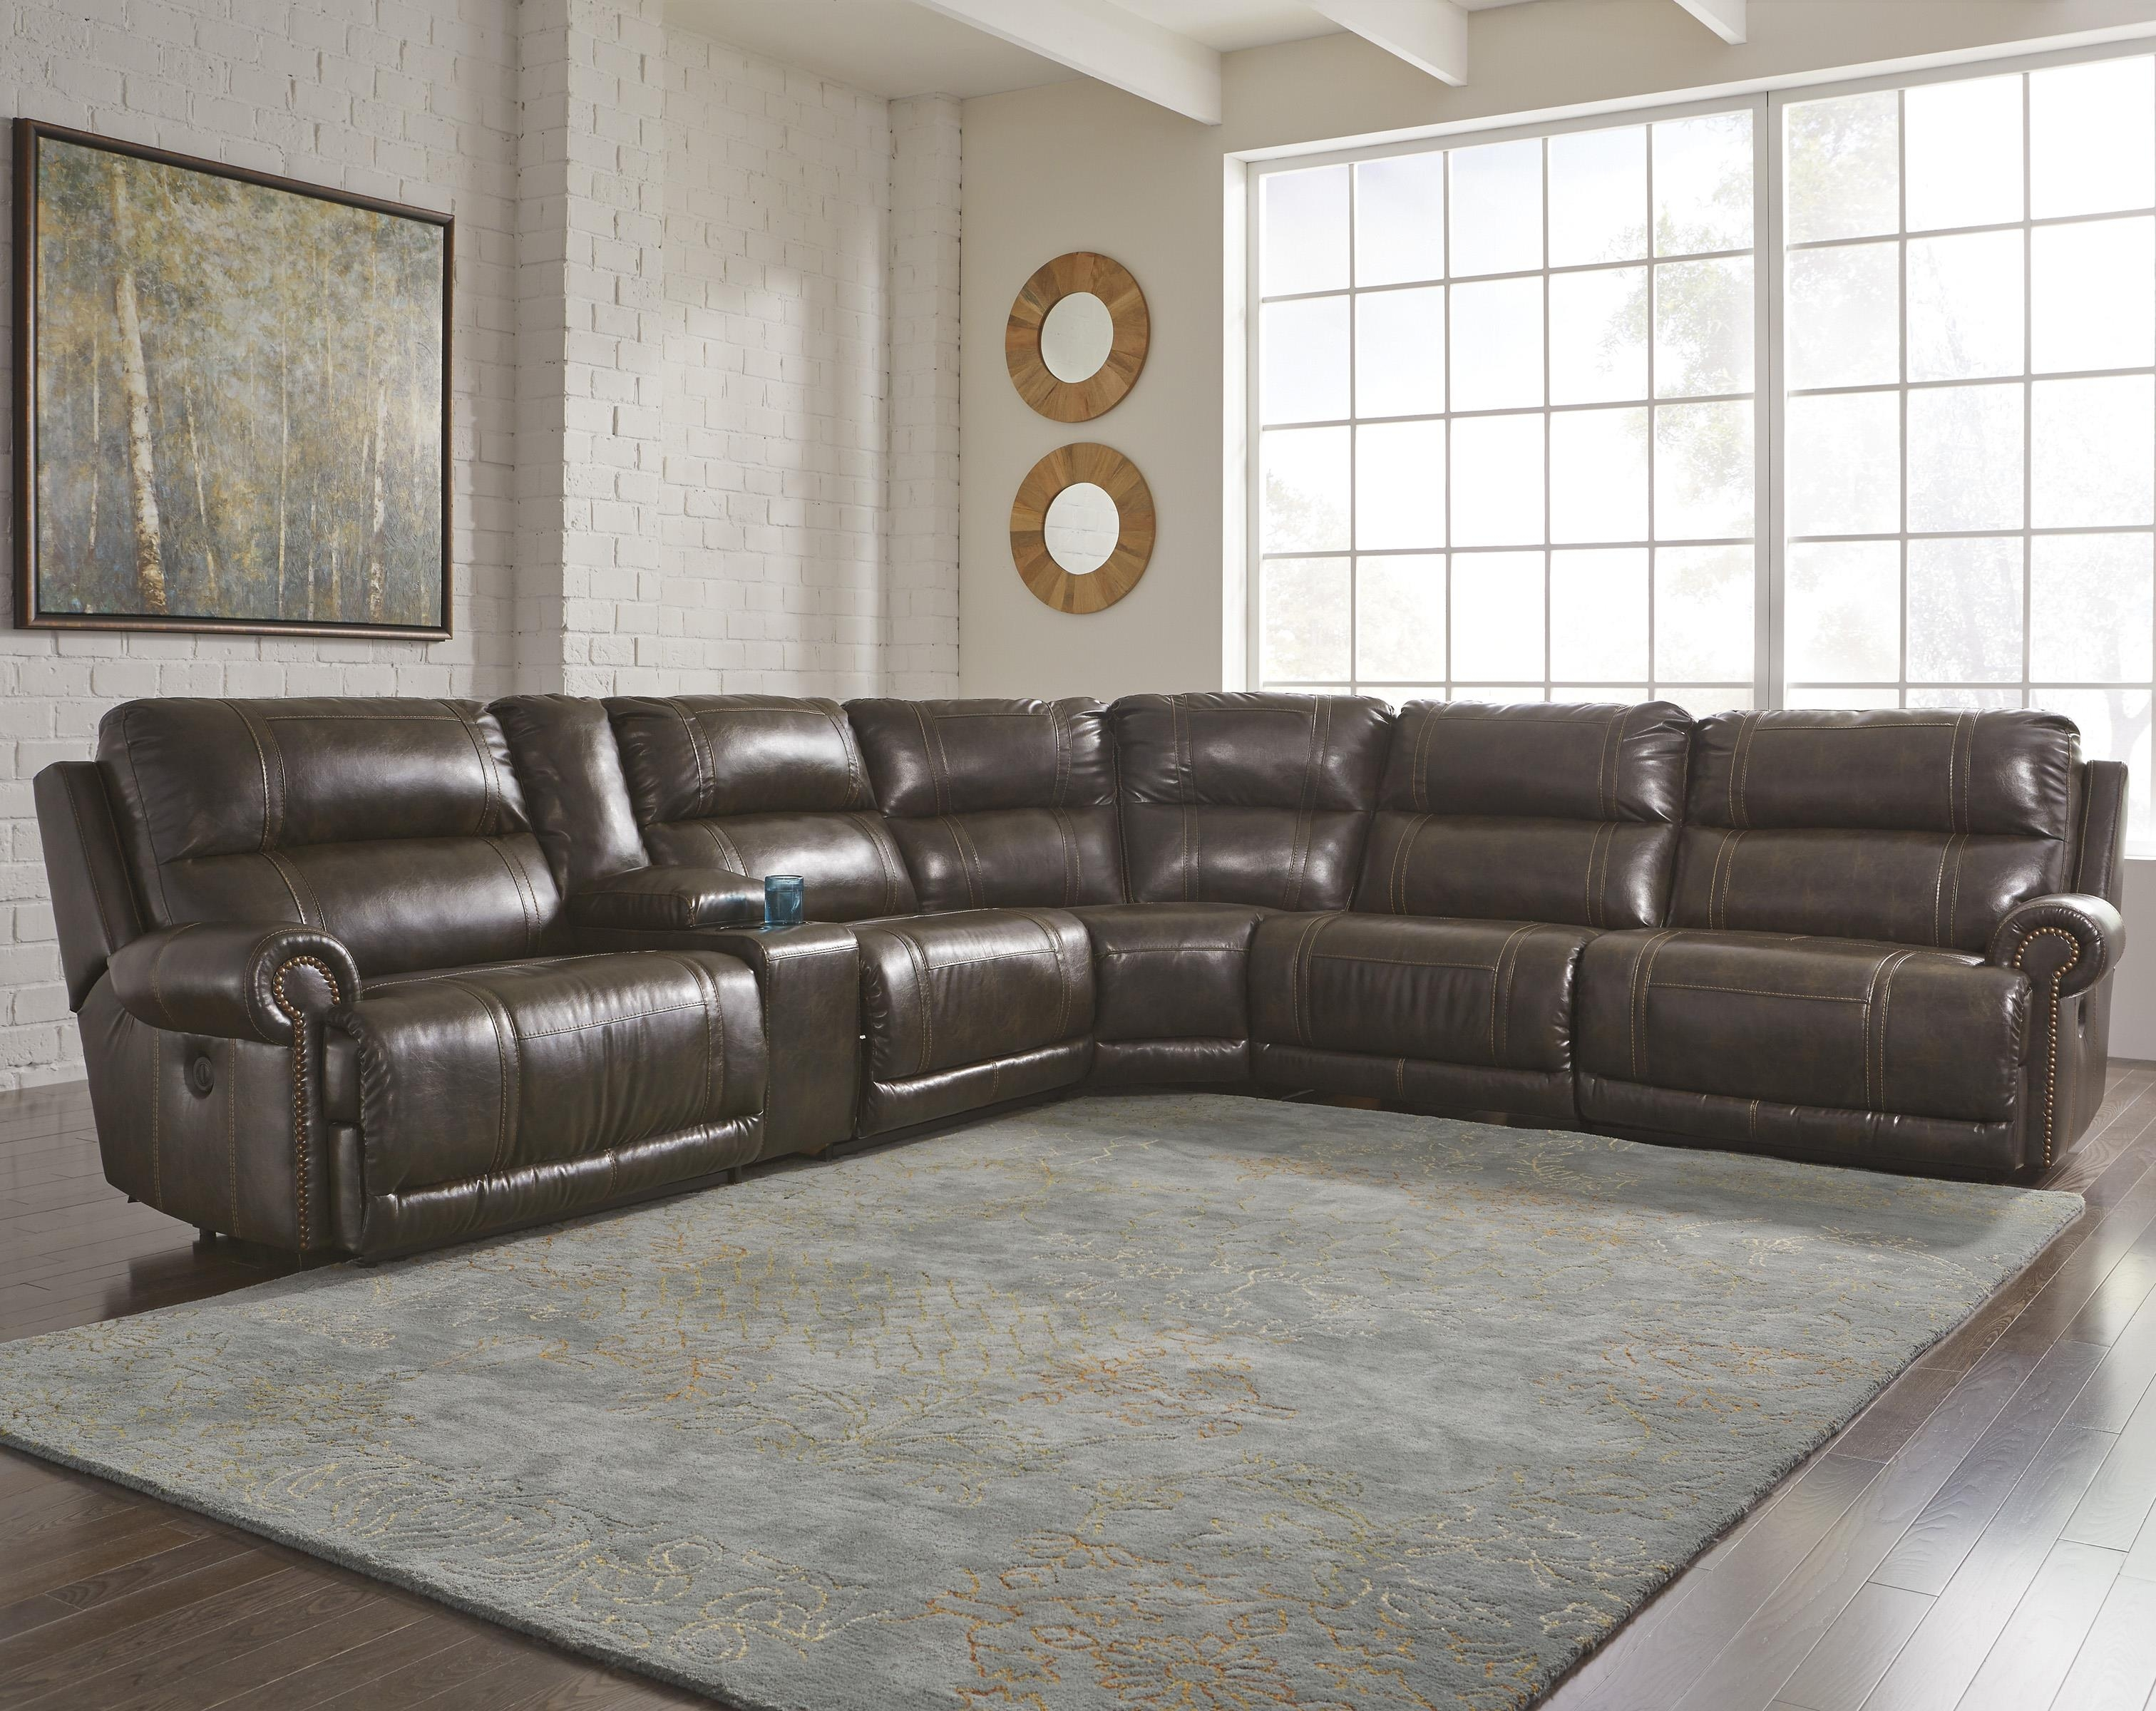 sectionals recliner your add to full furniture sectional black grain leather sofa costco luxury home recliners loveseat with